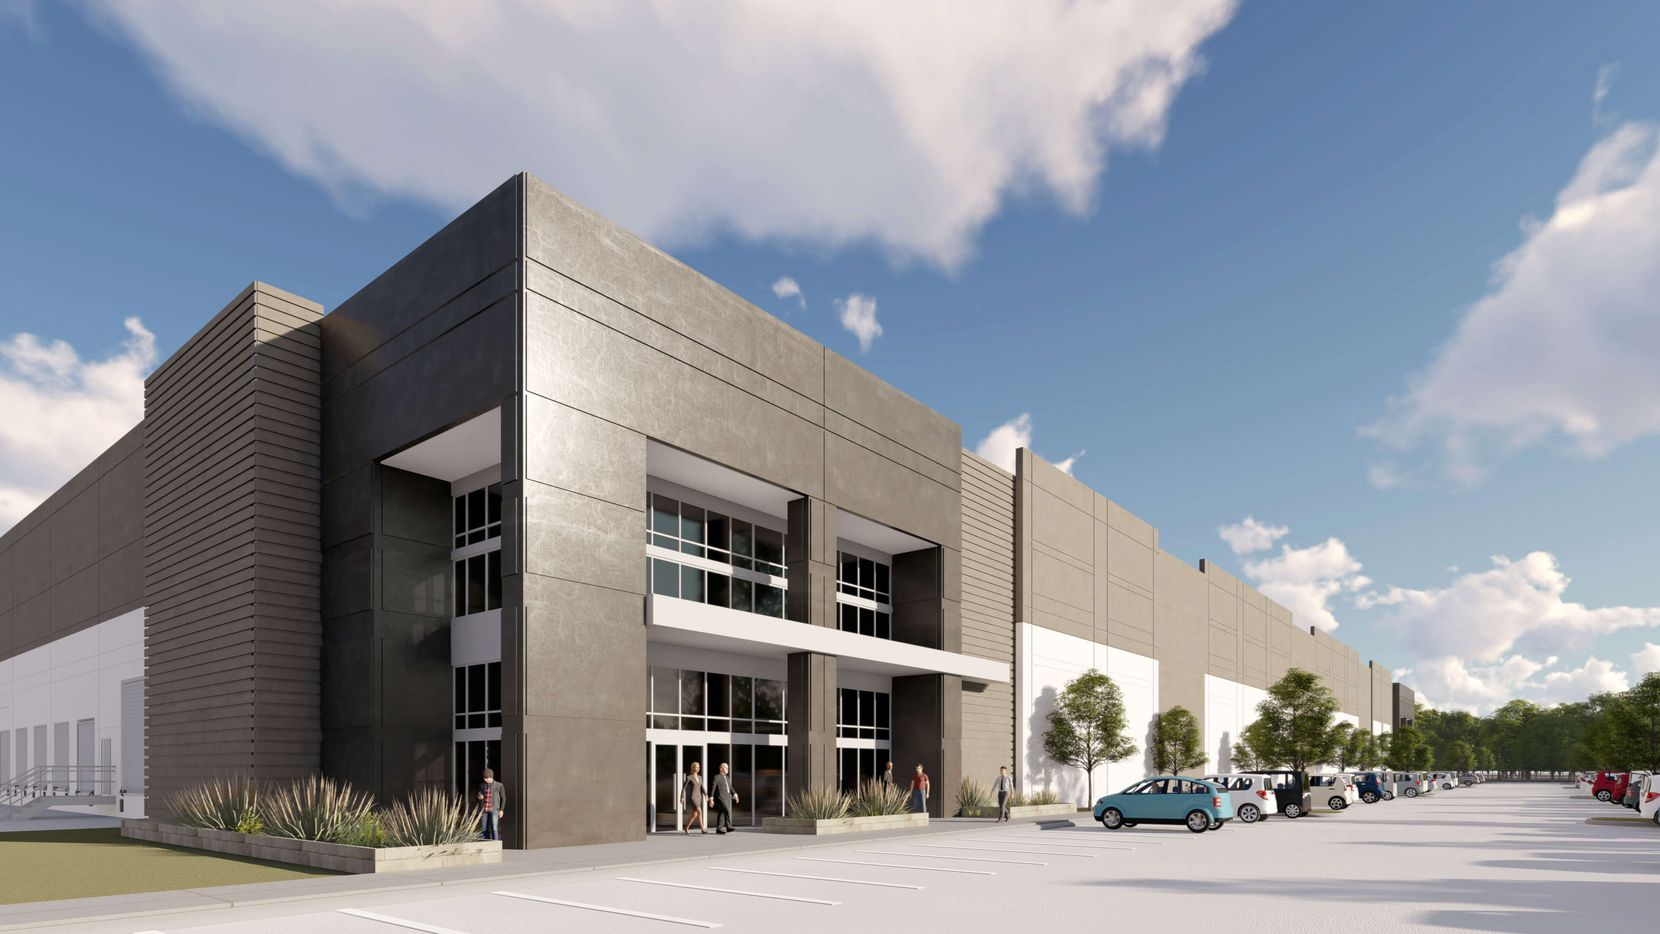 Dallas-based Urban Logistics Realty plans the project with five buildings.